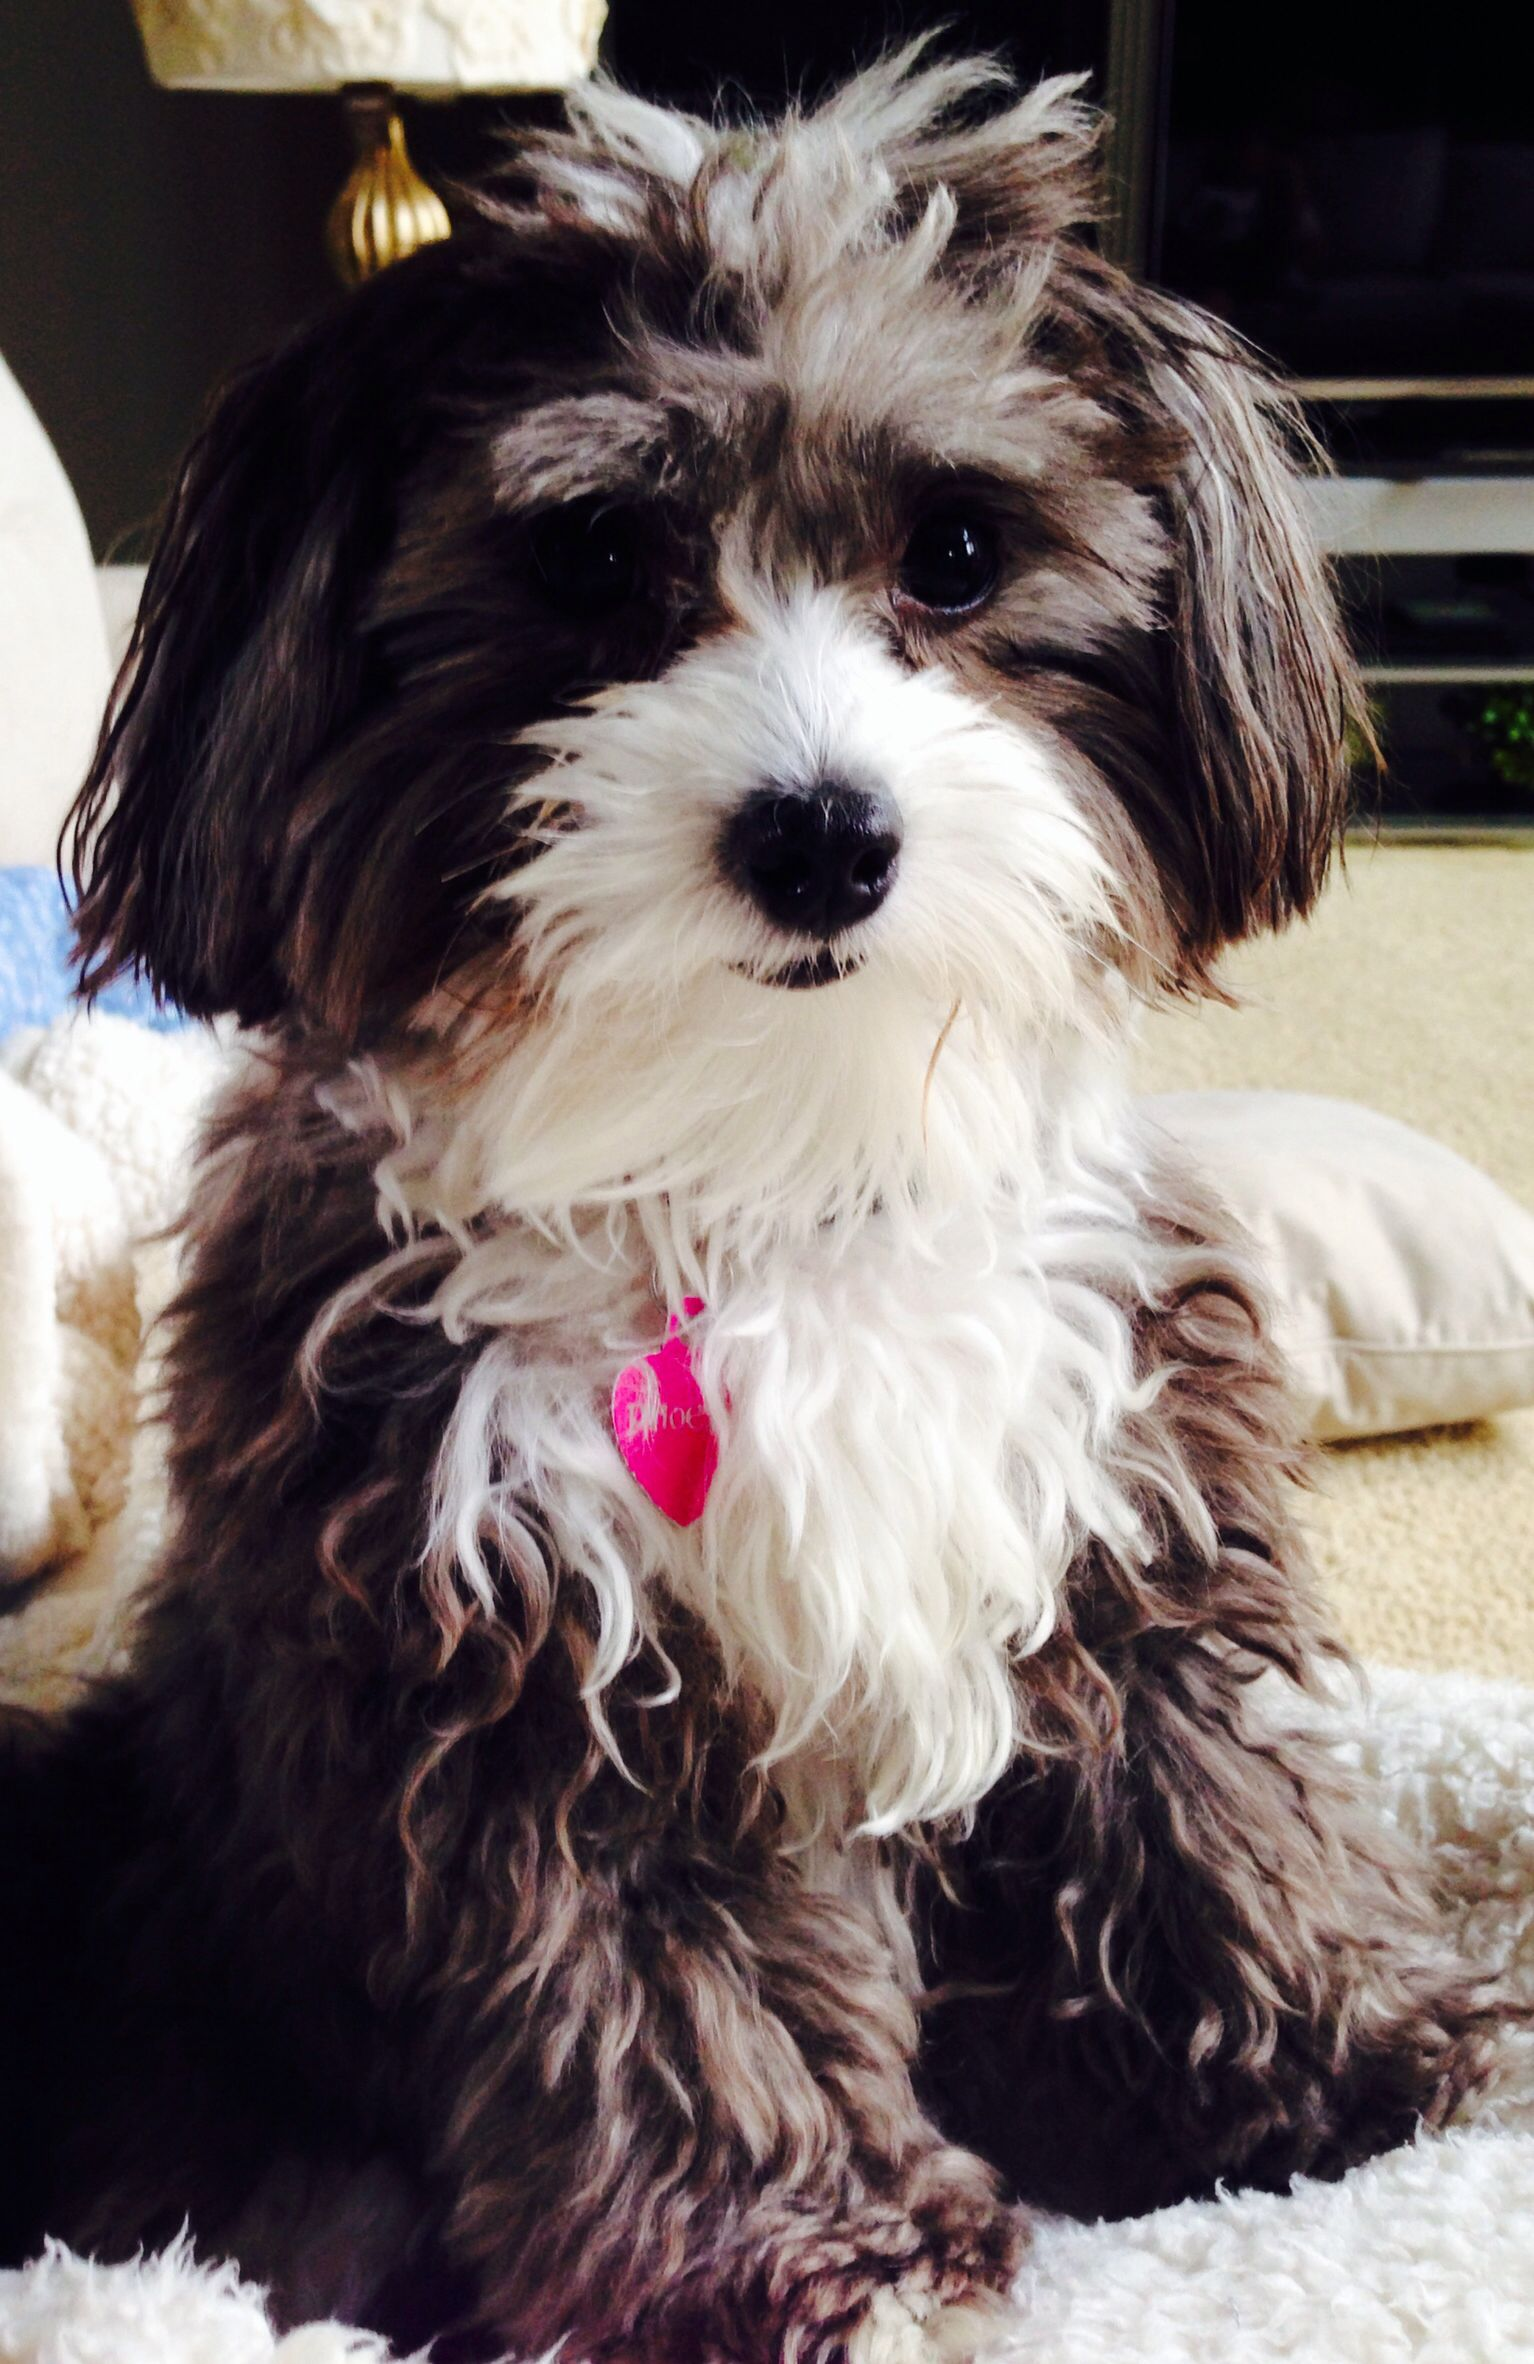 Phoebs | Cute dogs, Puppy time, Havanese